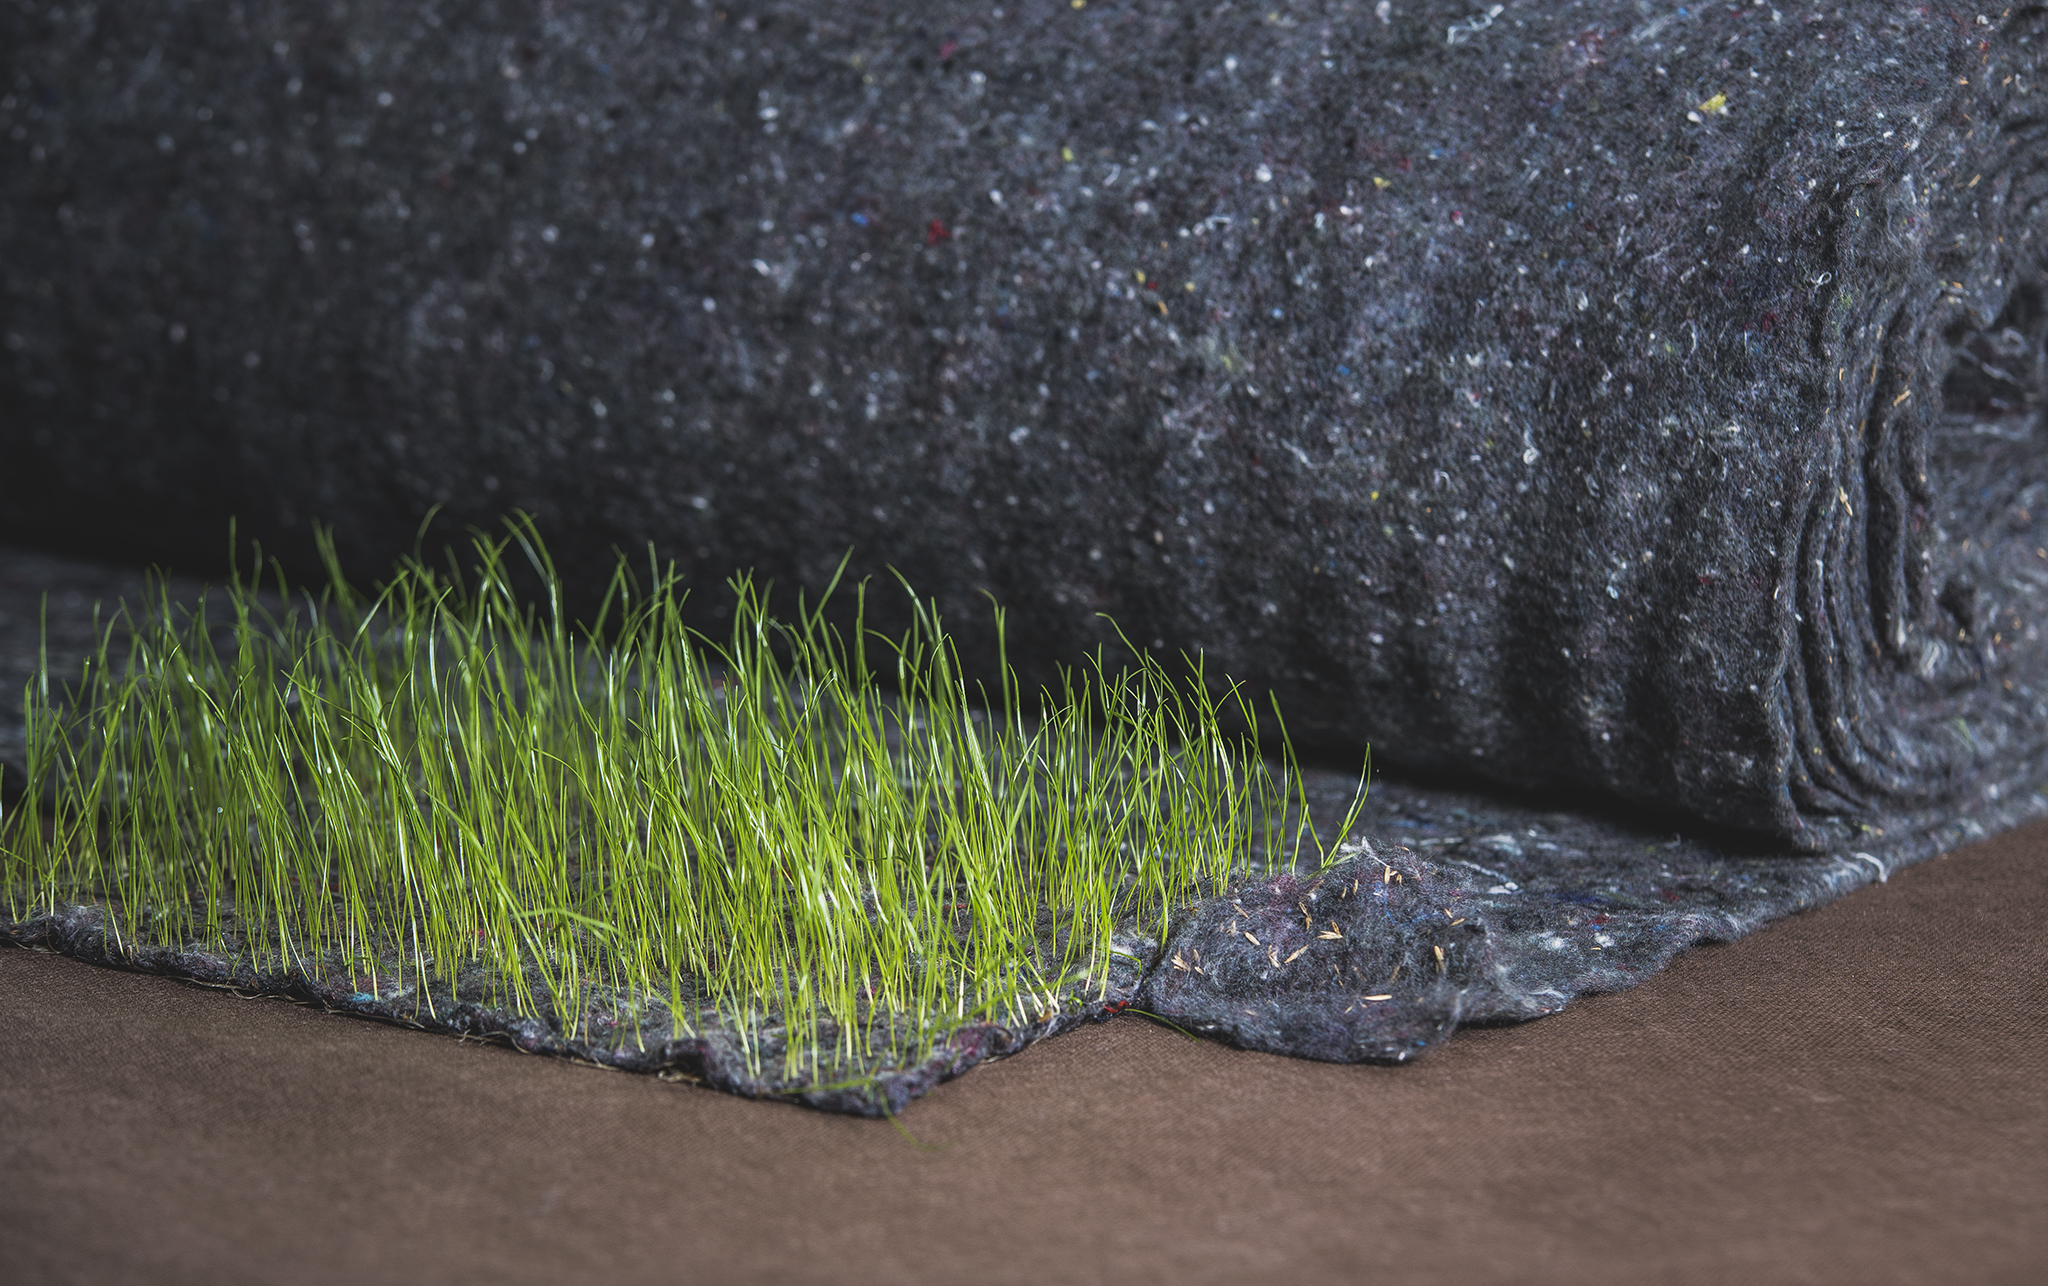 Fűtex textile with grass seed